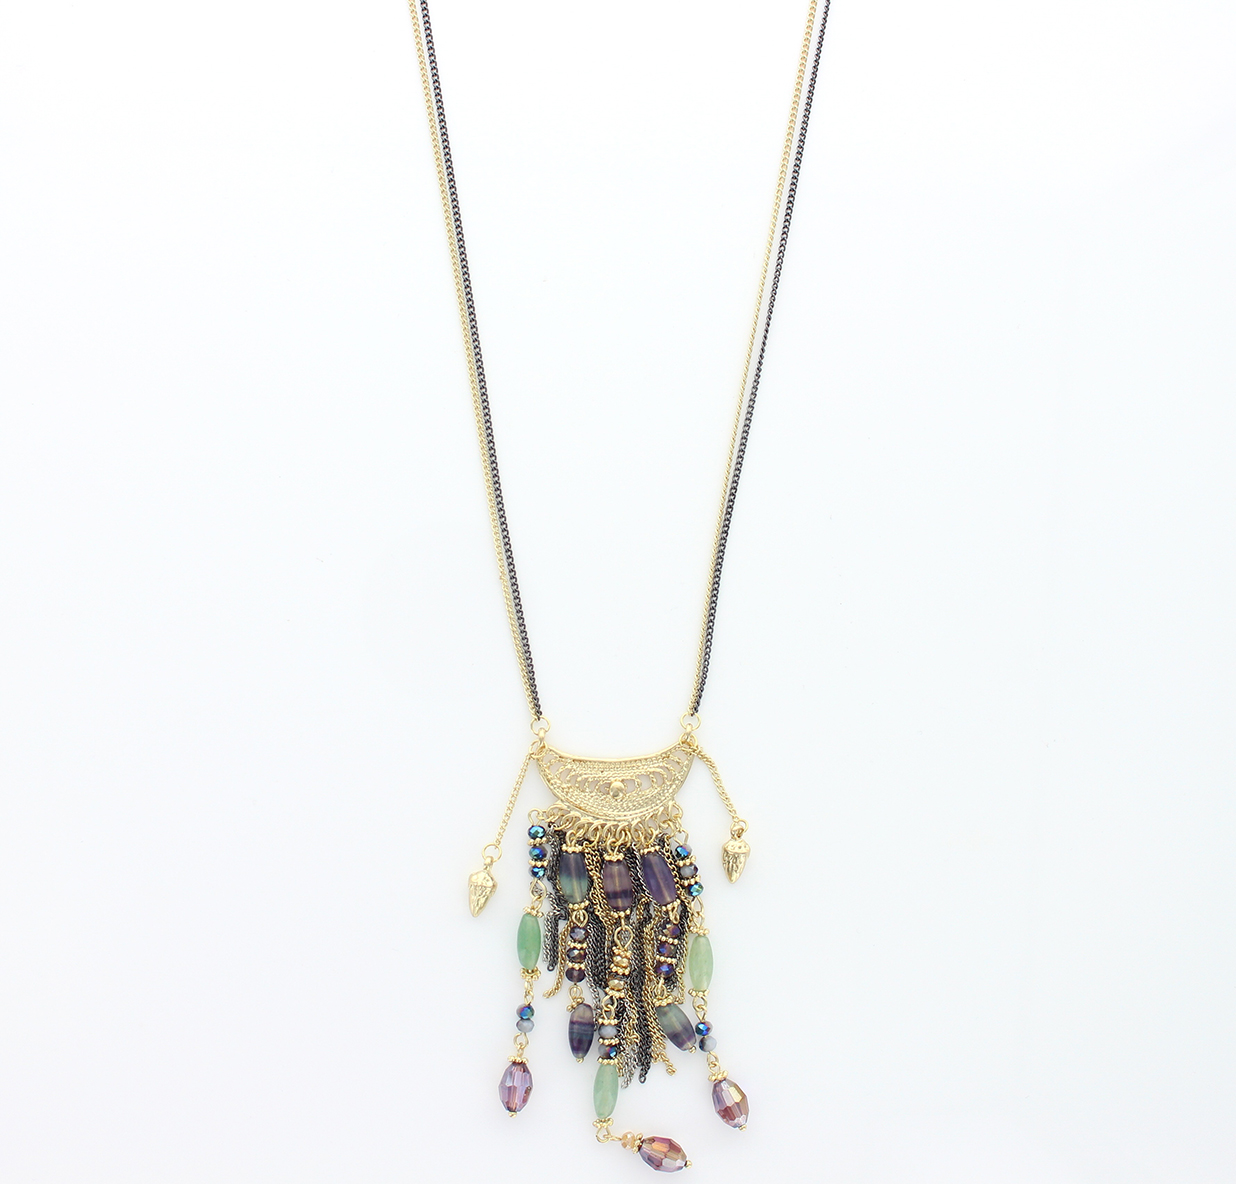 Long Beaded Chandelier Chain Best Of Everything Online